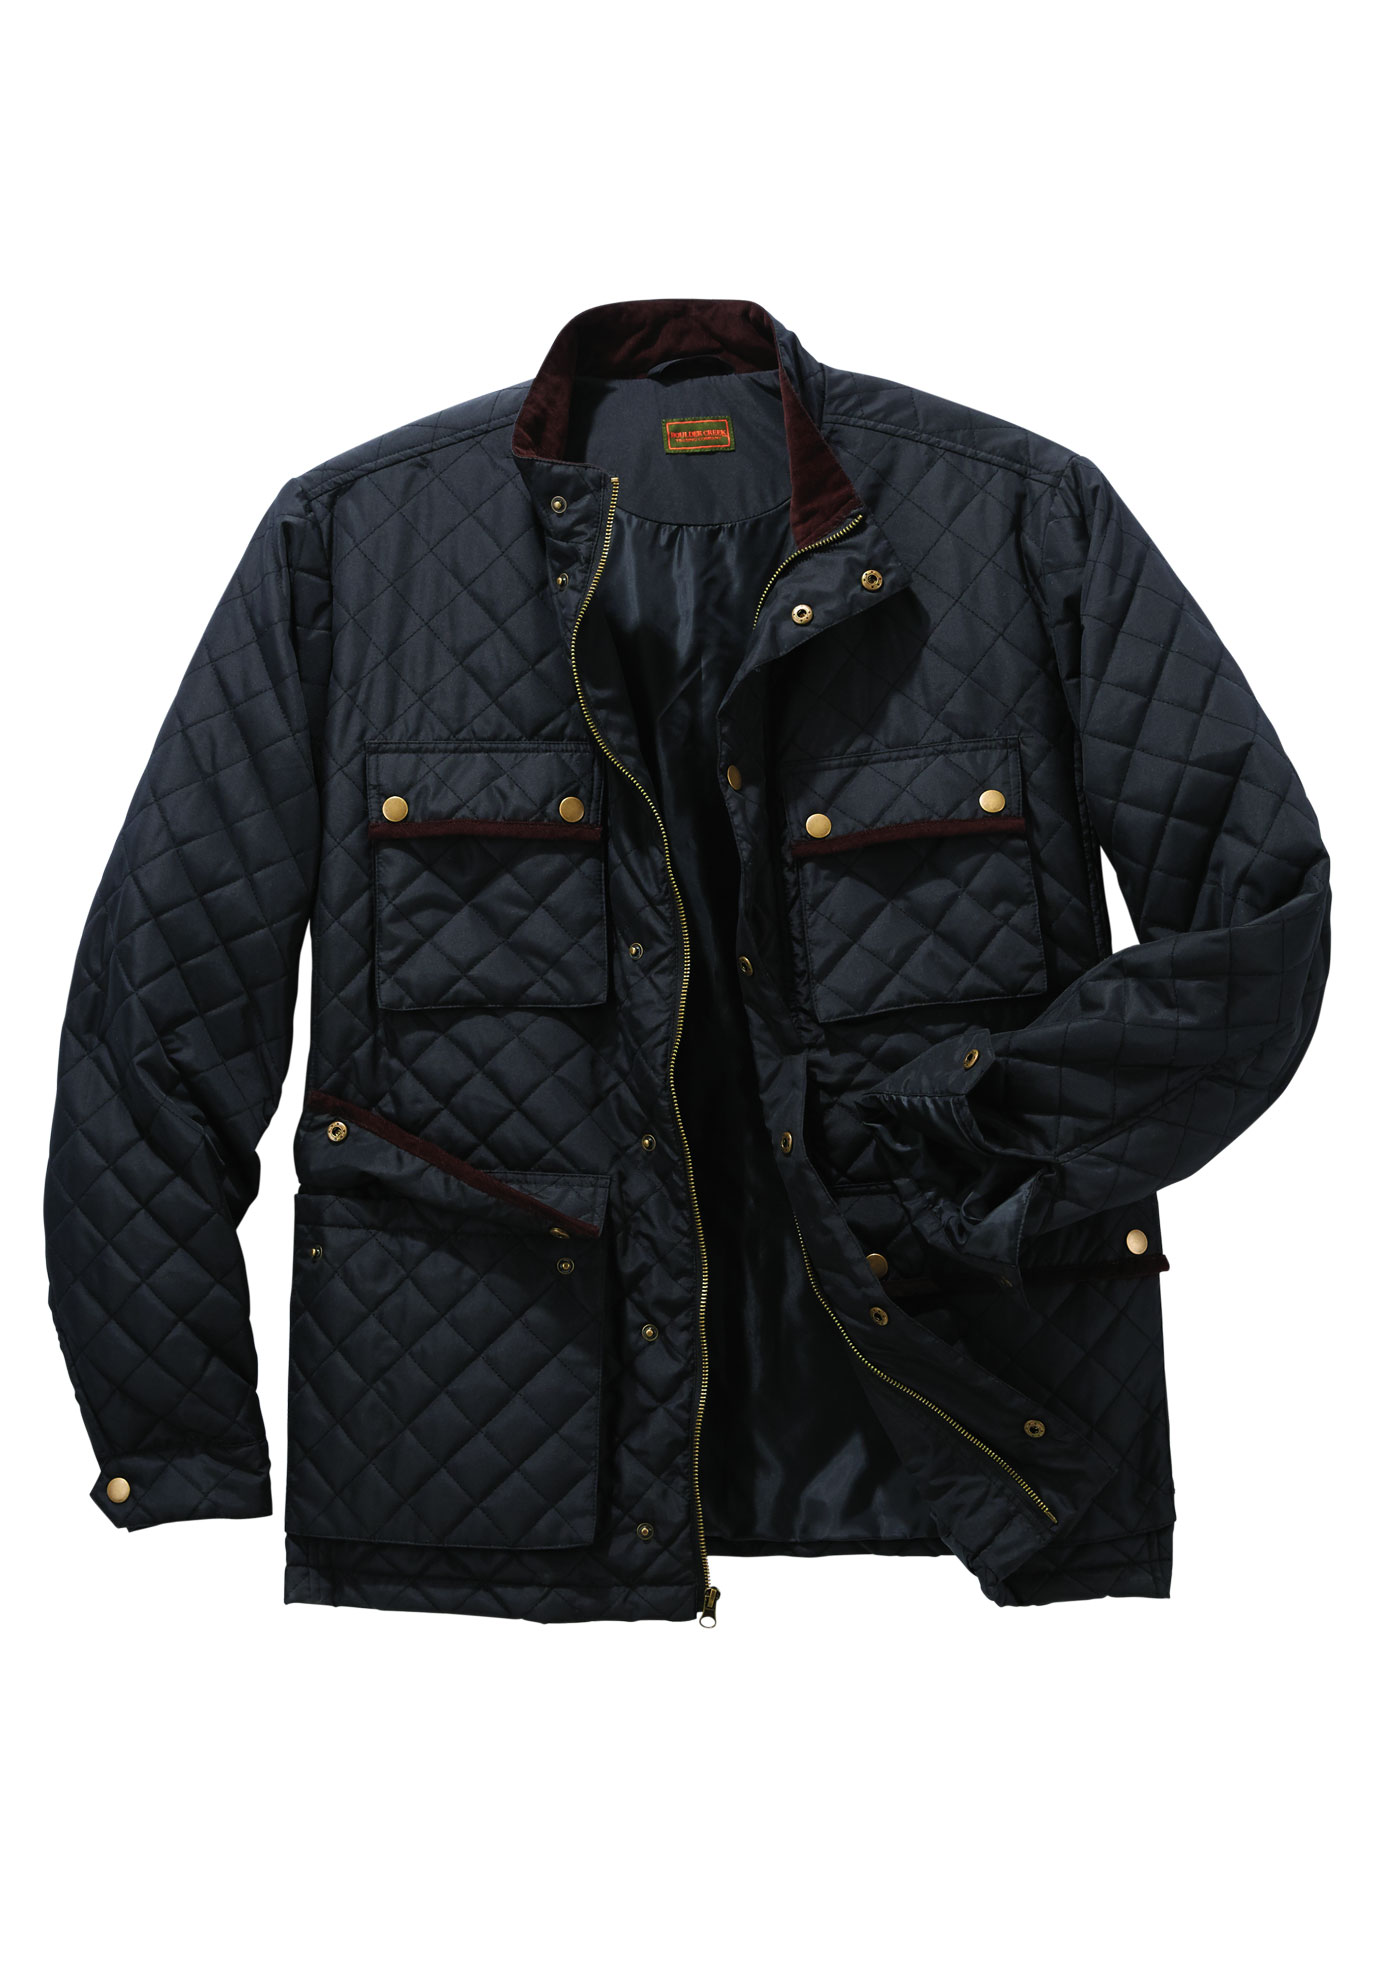 Boulder Creek by Kingsize Mens Big /& Tall Quilted Jacket